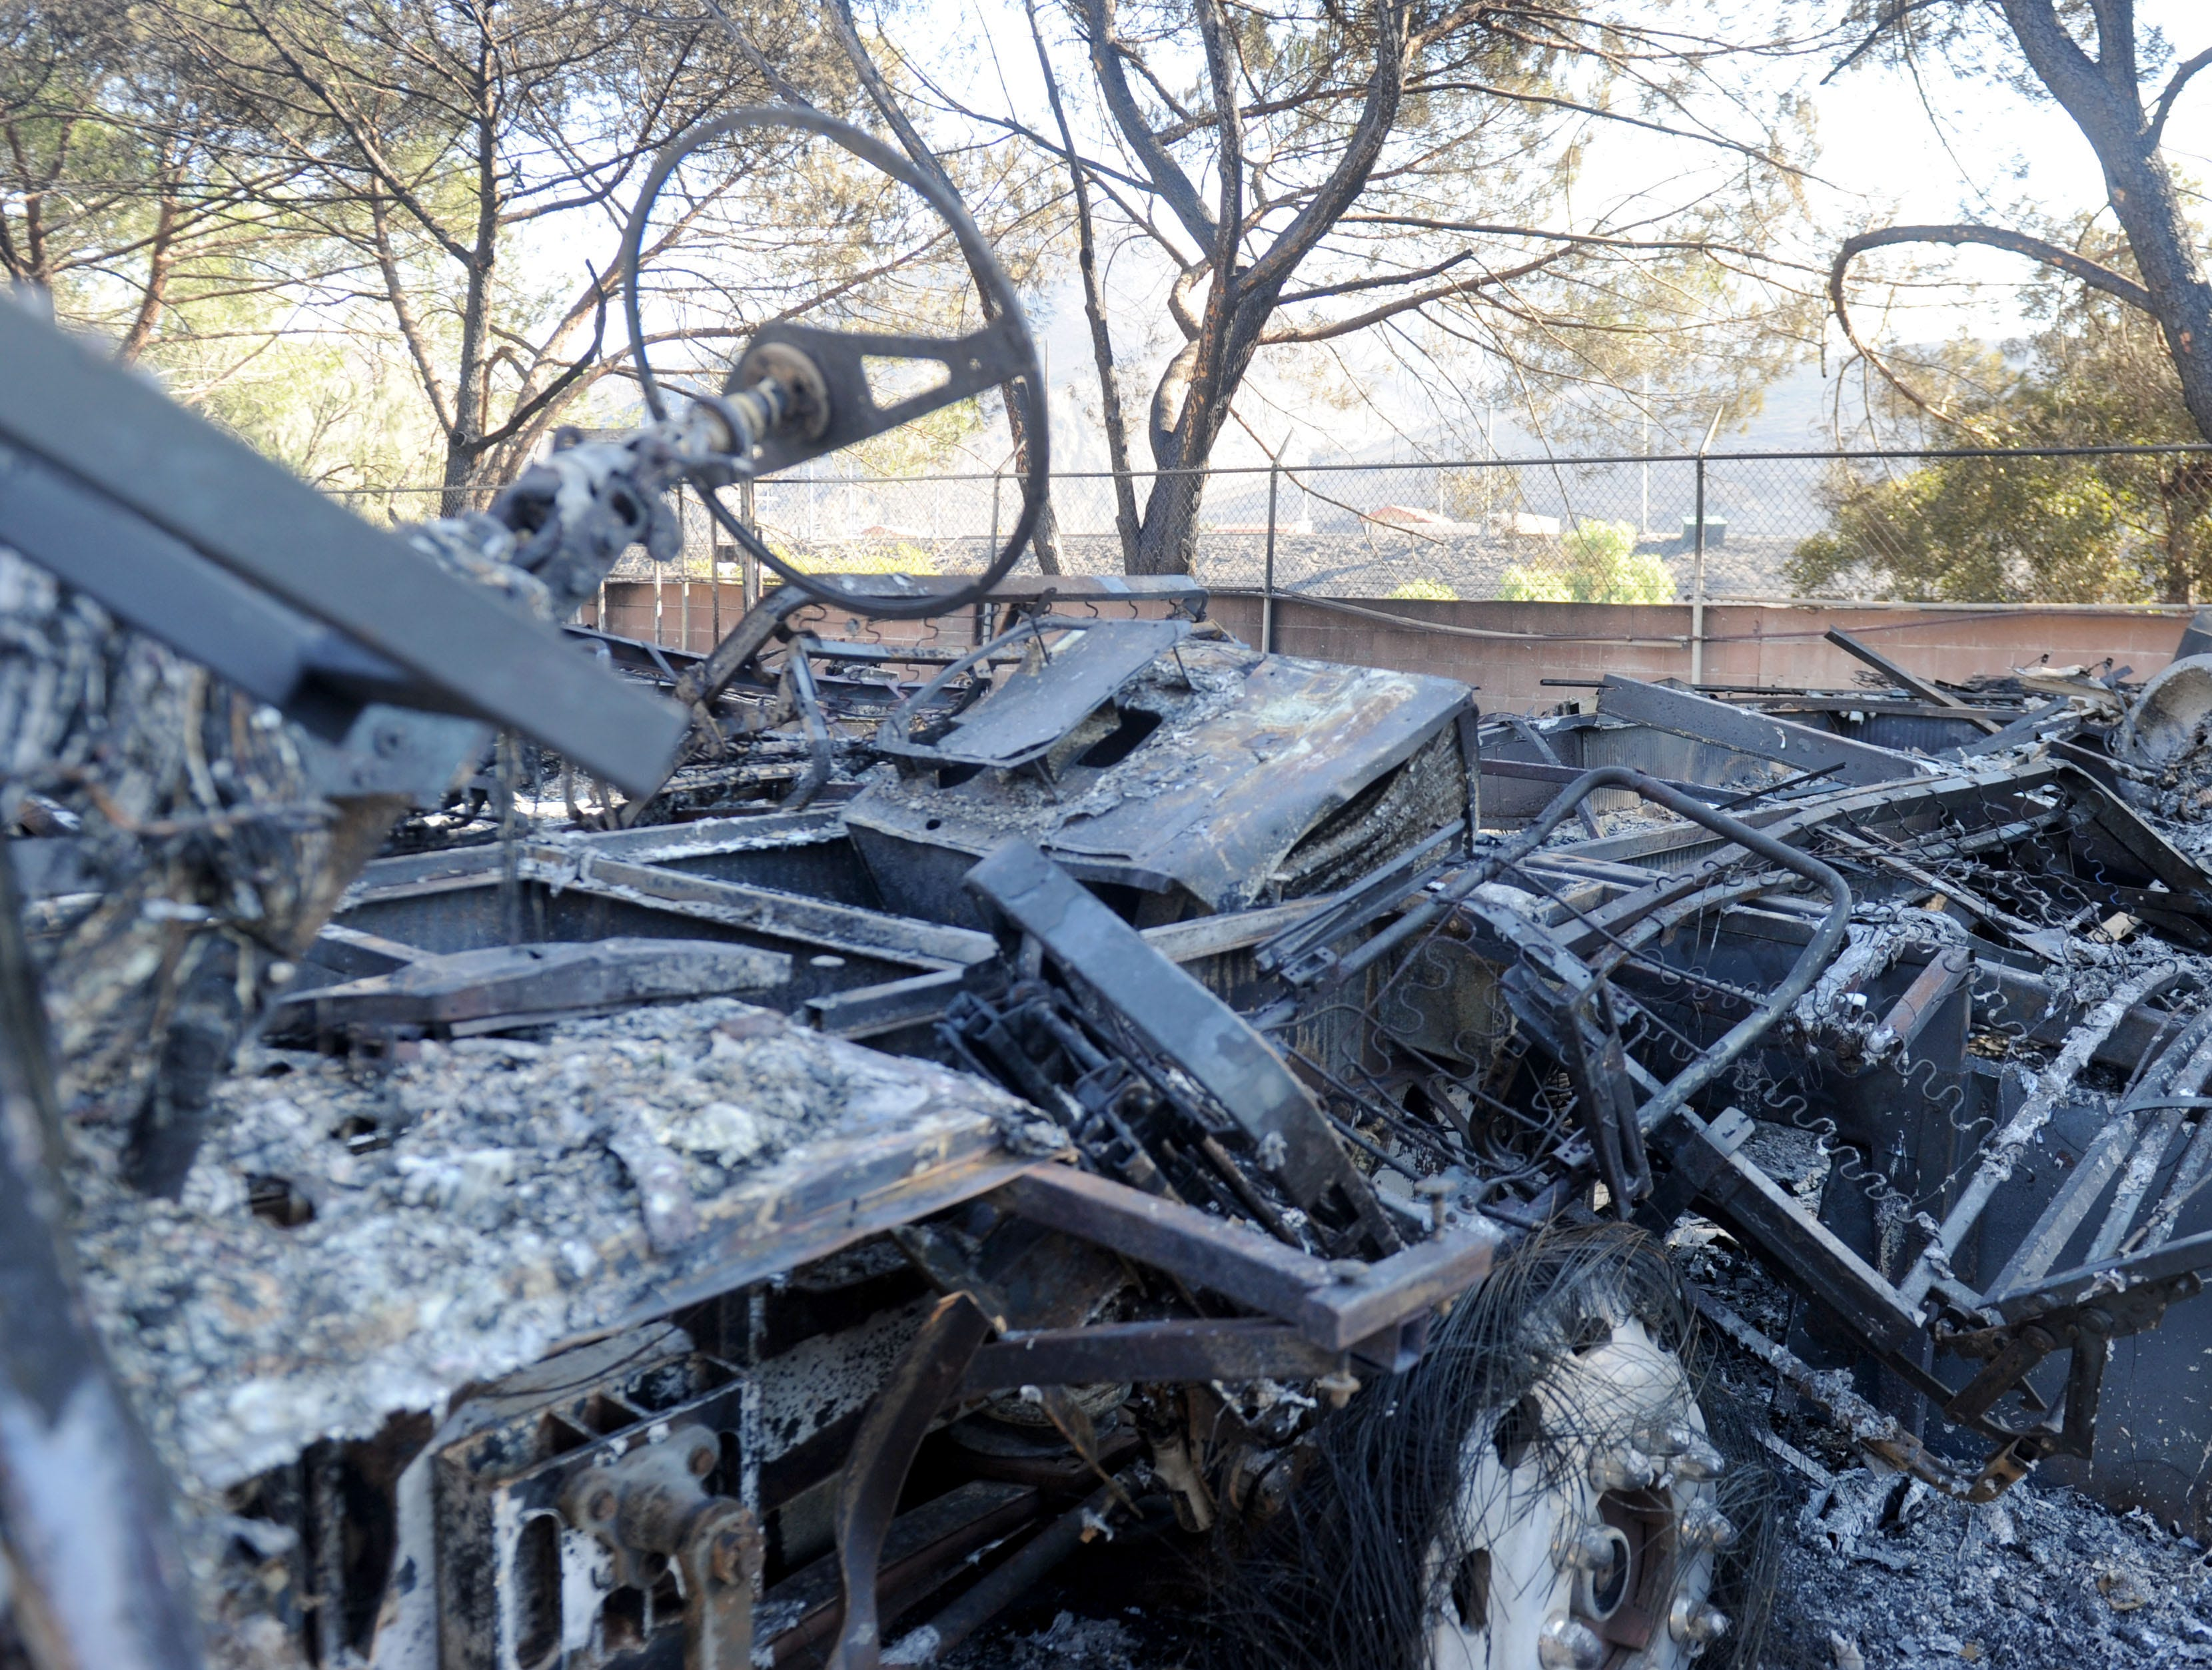 Cars and recreational vehicles were burned by the Hill Fire inside the Vallecito mobile home park on Old Conejo Road in Newbury Park.